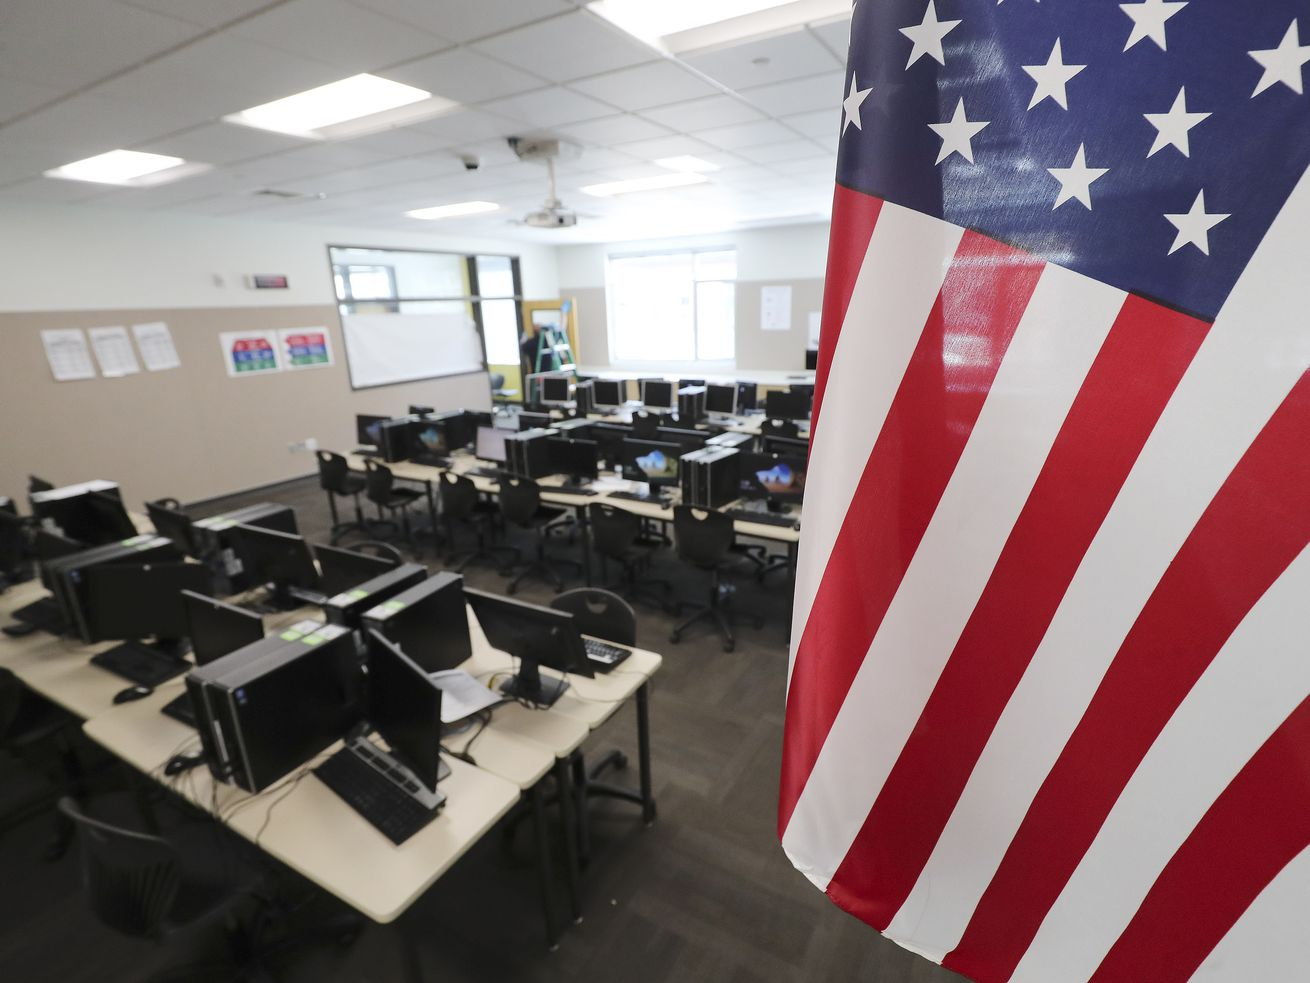 An empty classroom at Mount Jordan Middle School in Sandy is pictured on Tuesday, April 14, 2020. Utah's K-12 public schools will remain closed for in-person learning for the remainder of the academic year, state officials announced Tuesday.